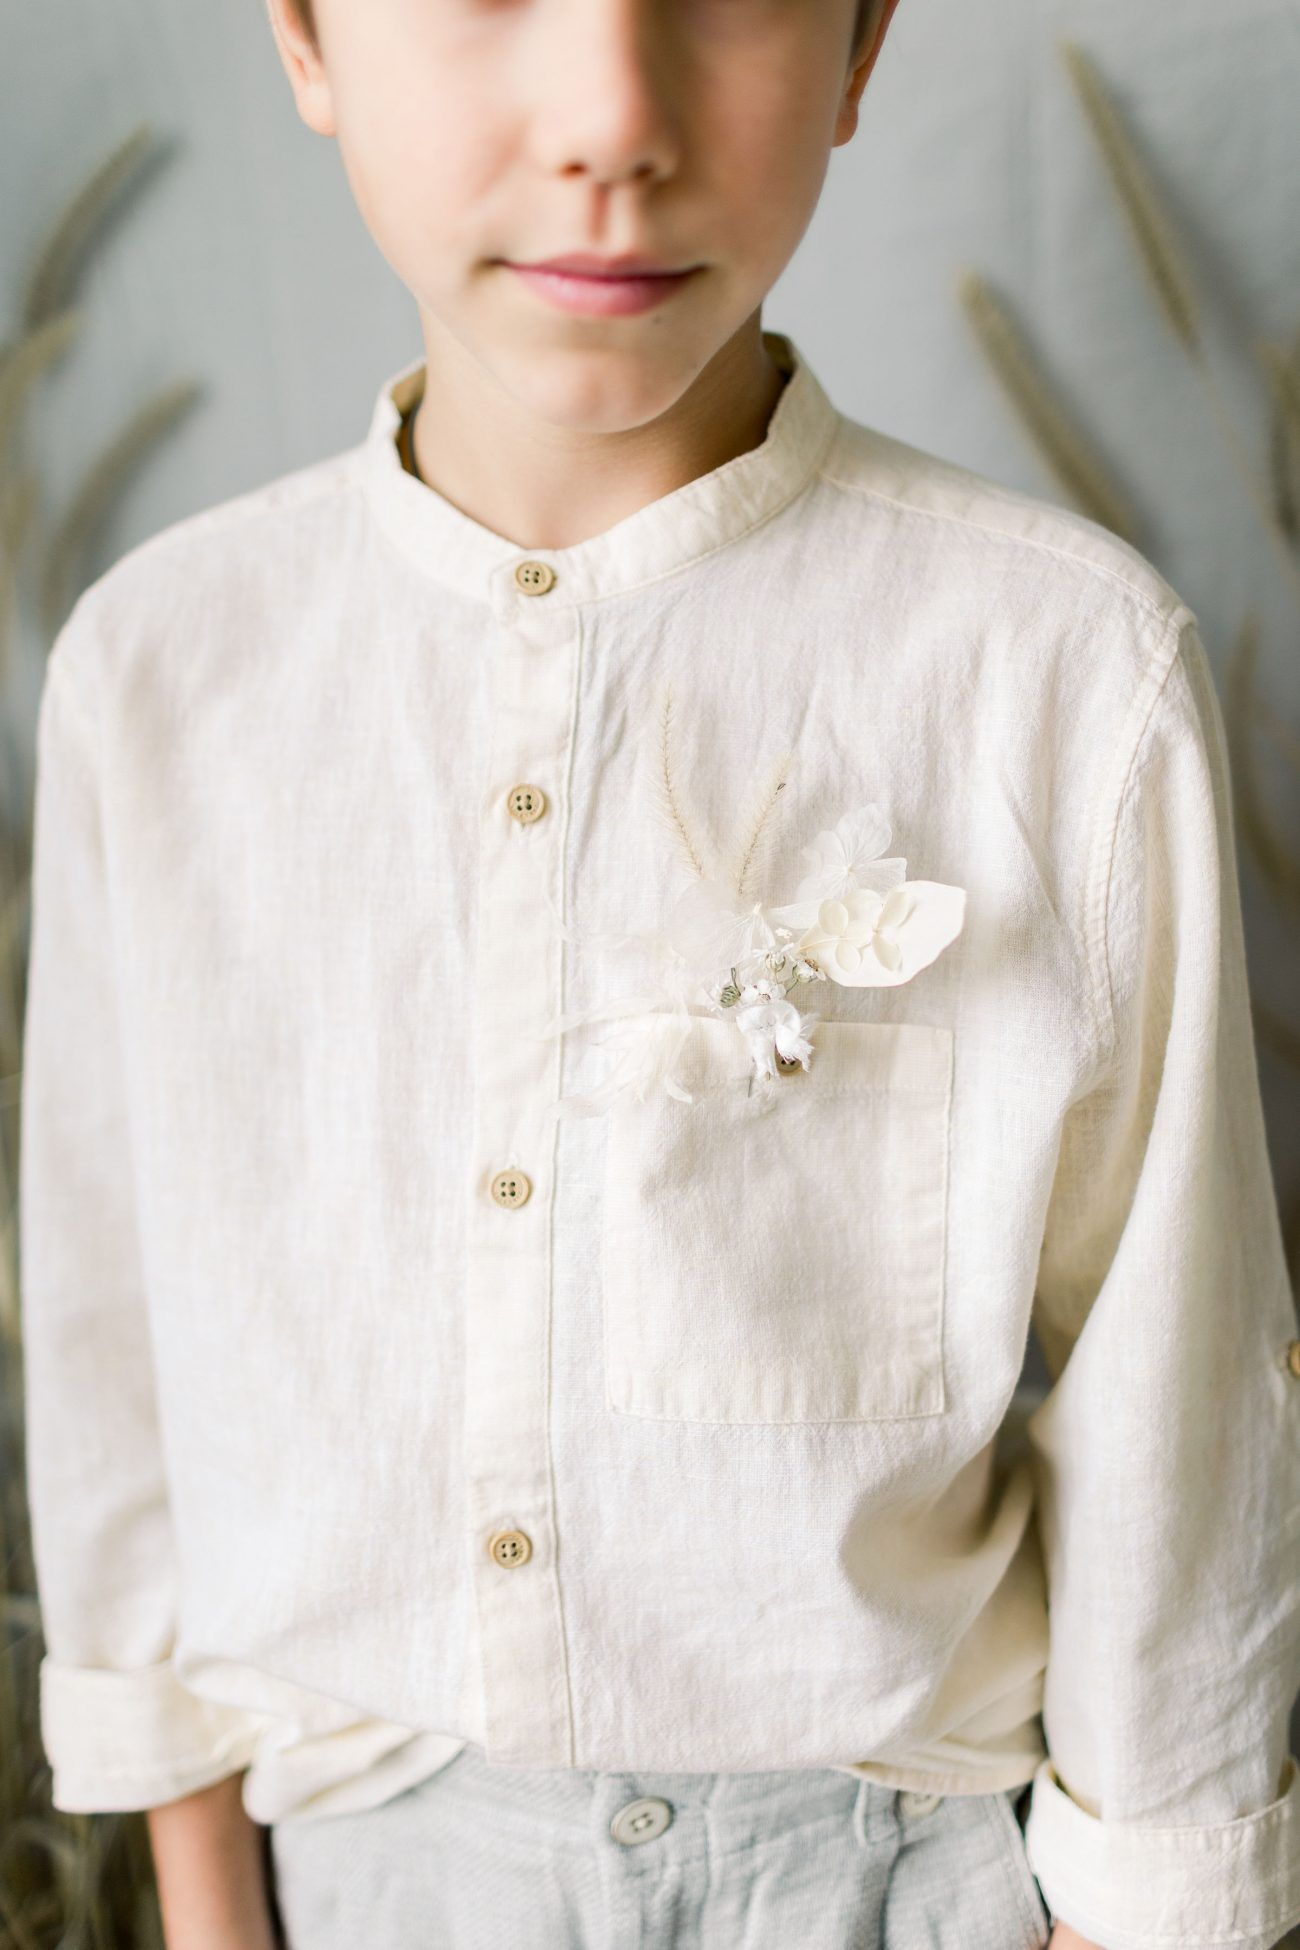 Emily-Michelson-Modern-Wedding-Dress-Children-Little-Groomsmen-03